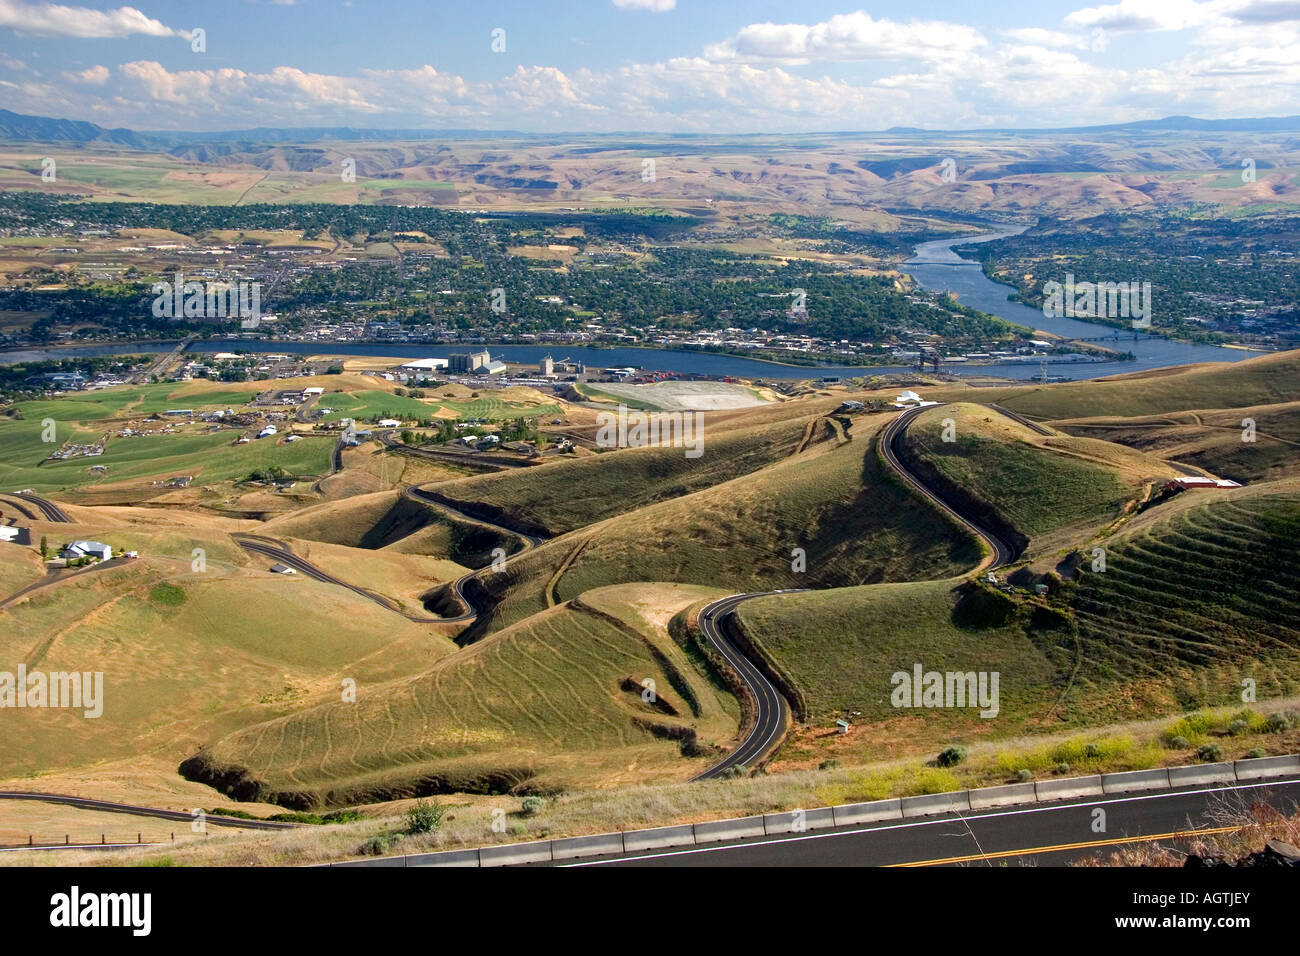 A view of Lewiston Idaho and Pullman Washington at the confluence of Clearwater and Snake Rivers Stock Photo